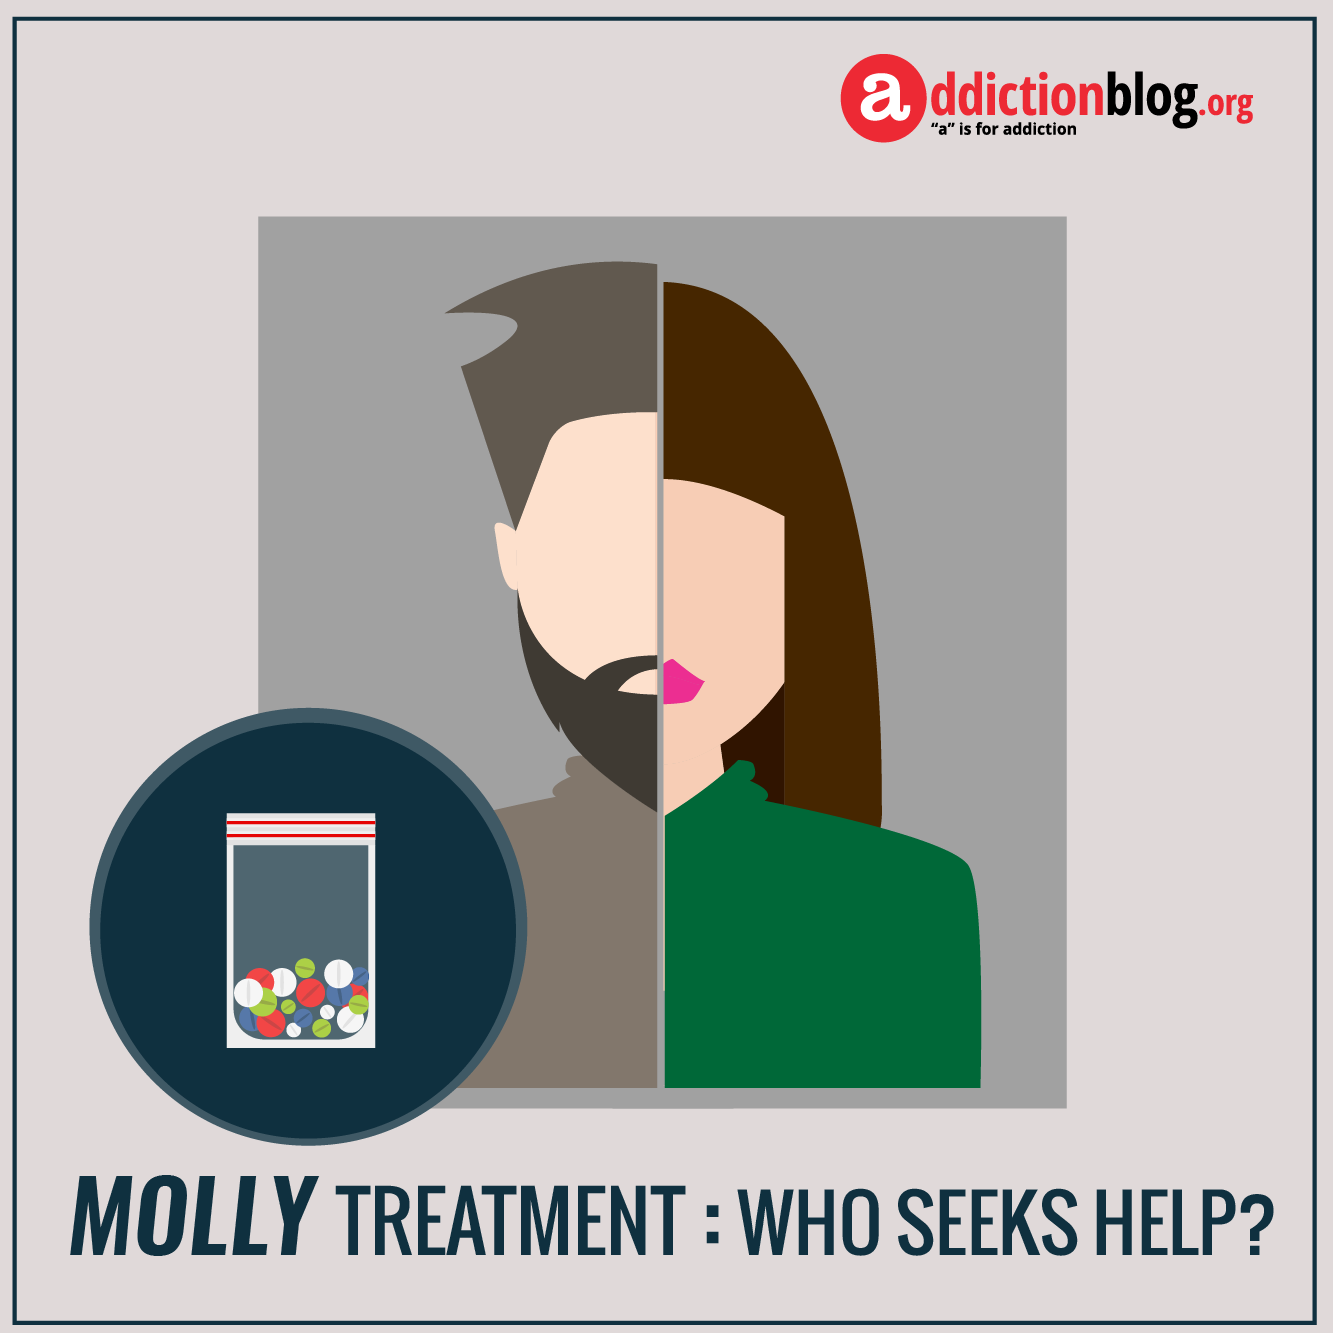 Molly rehab treatment: Who needs help for ecstasy addiction? (INFOGRAPHIC)